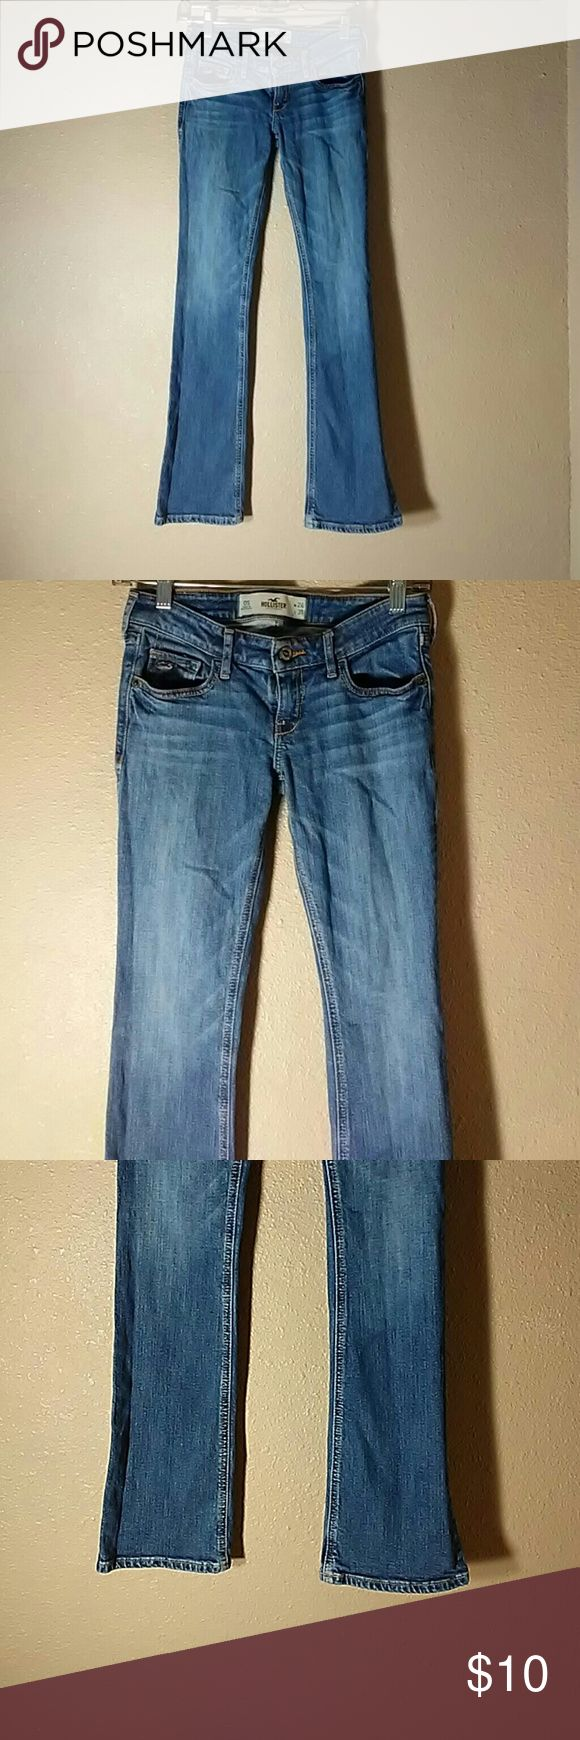 Hollister Boot Cut Jeans Good condition Inseam 31 inches slight fraying at the bottom Hollister Jeans Boot Cut